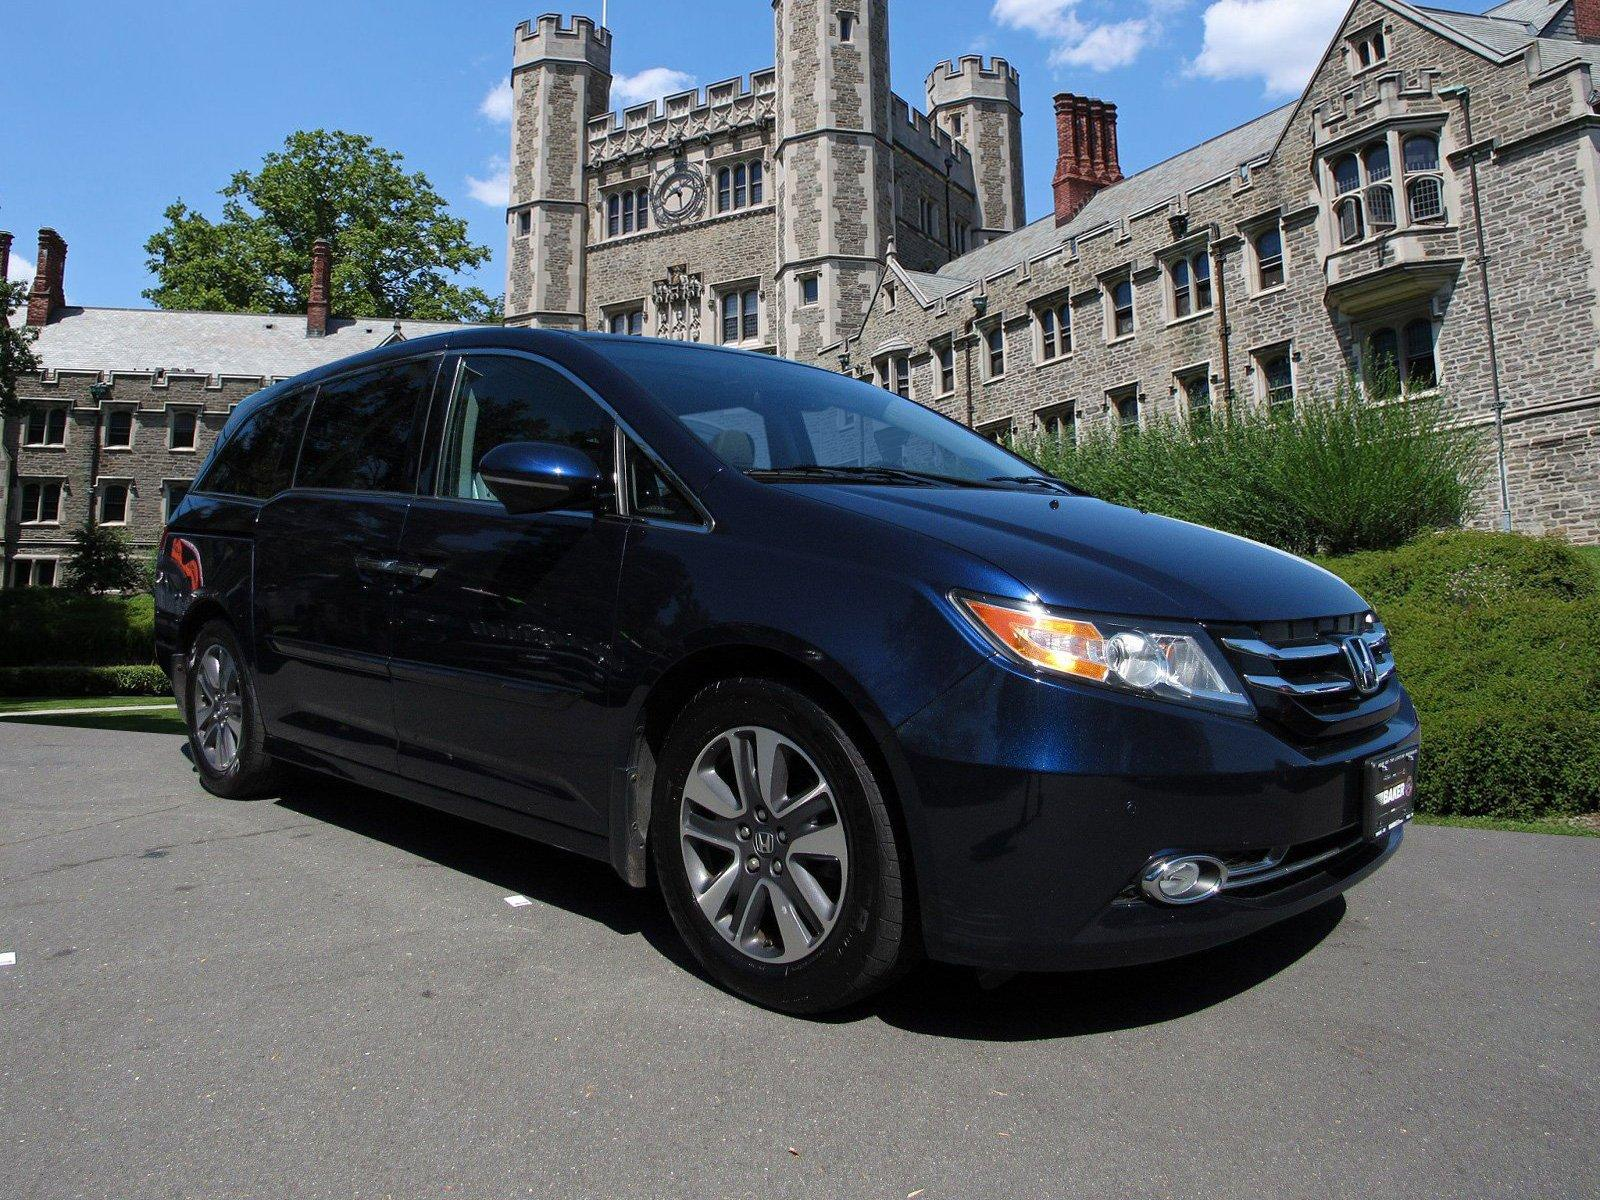 Used 2015 Honda Odyssey Touring For Sale ($20,995) | Victory Lotus Stock #111330